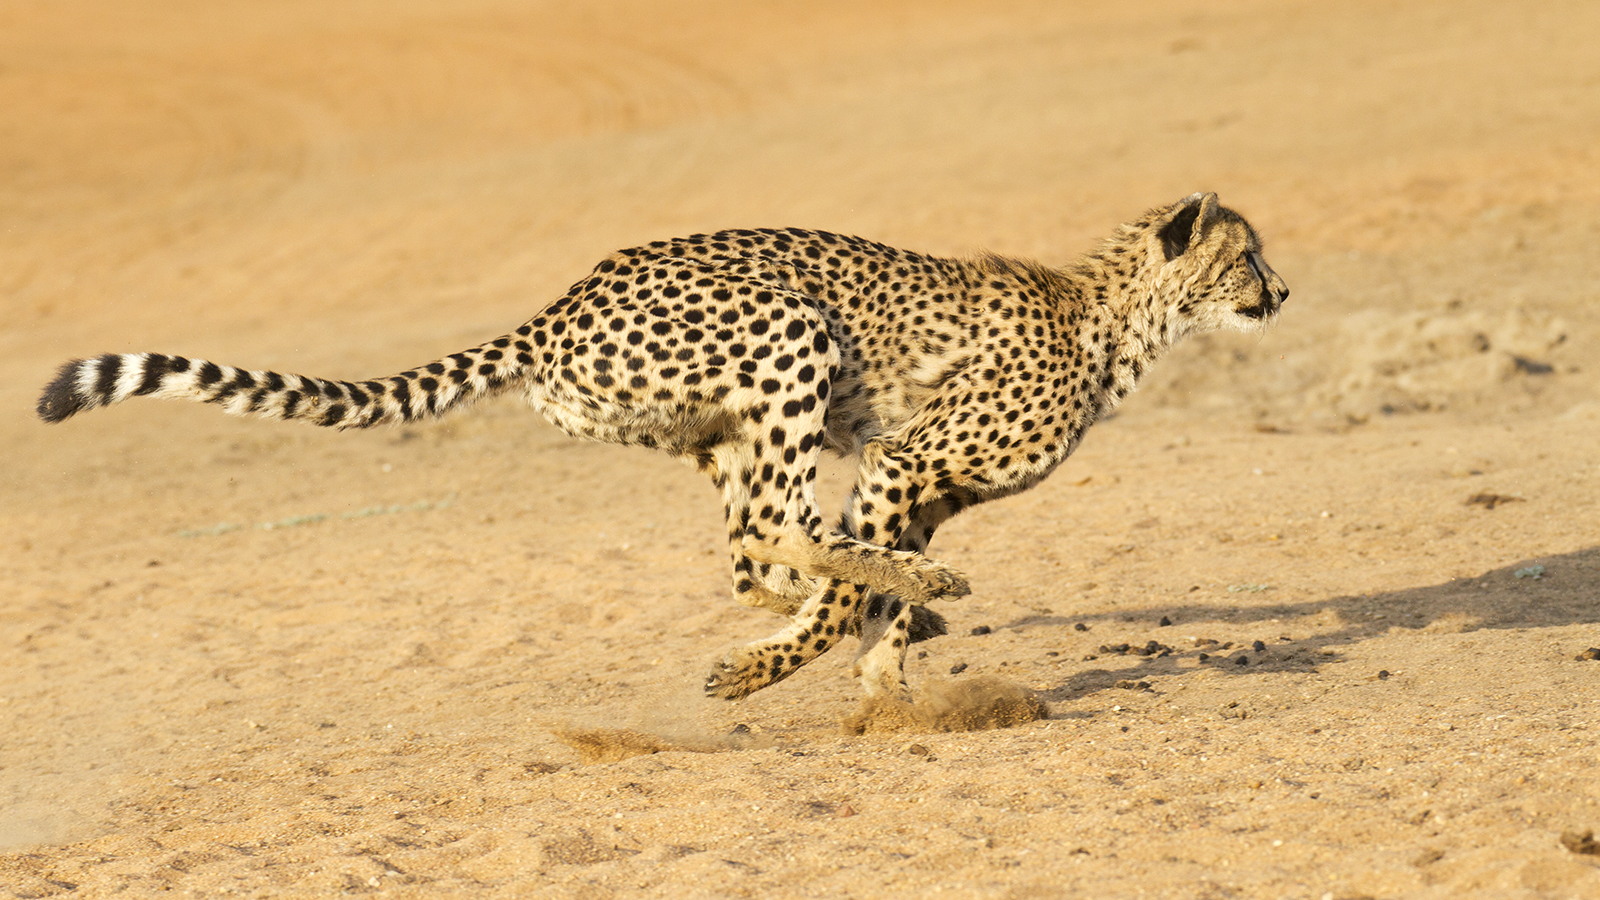 Cheetah Ready to Attack 743.74 Kb